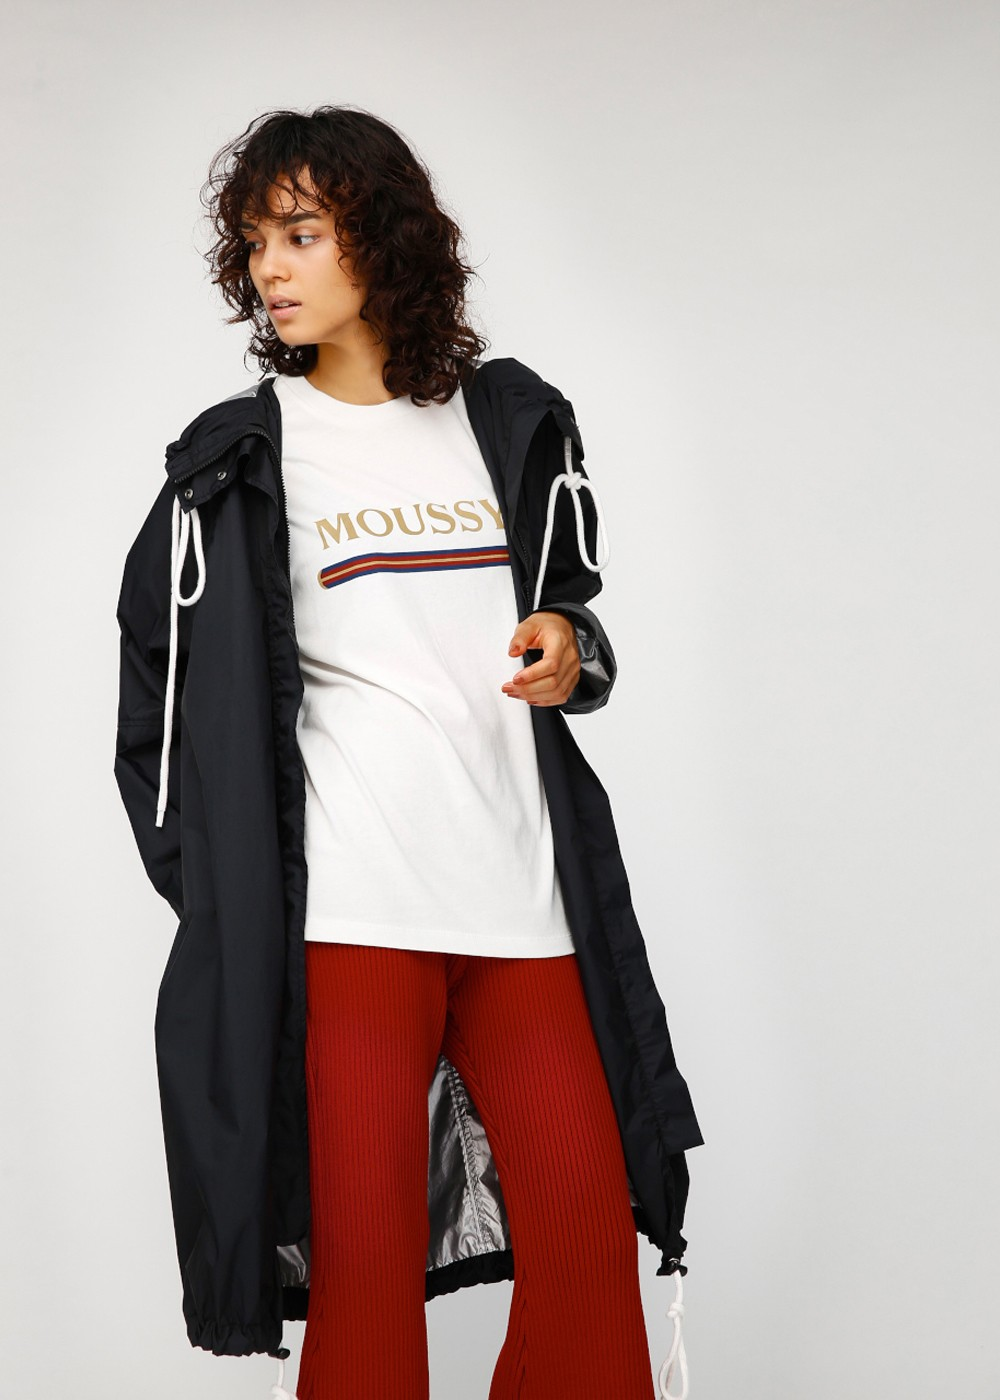 SW MIRROR WRITING COAT|BLK|その他コート|moussy|最大50%OFF